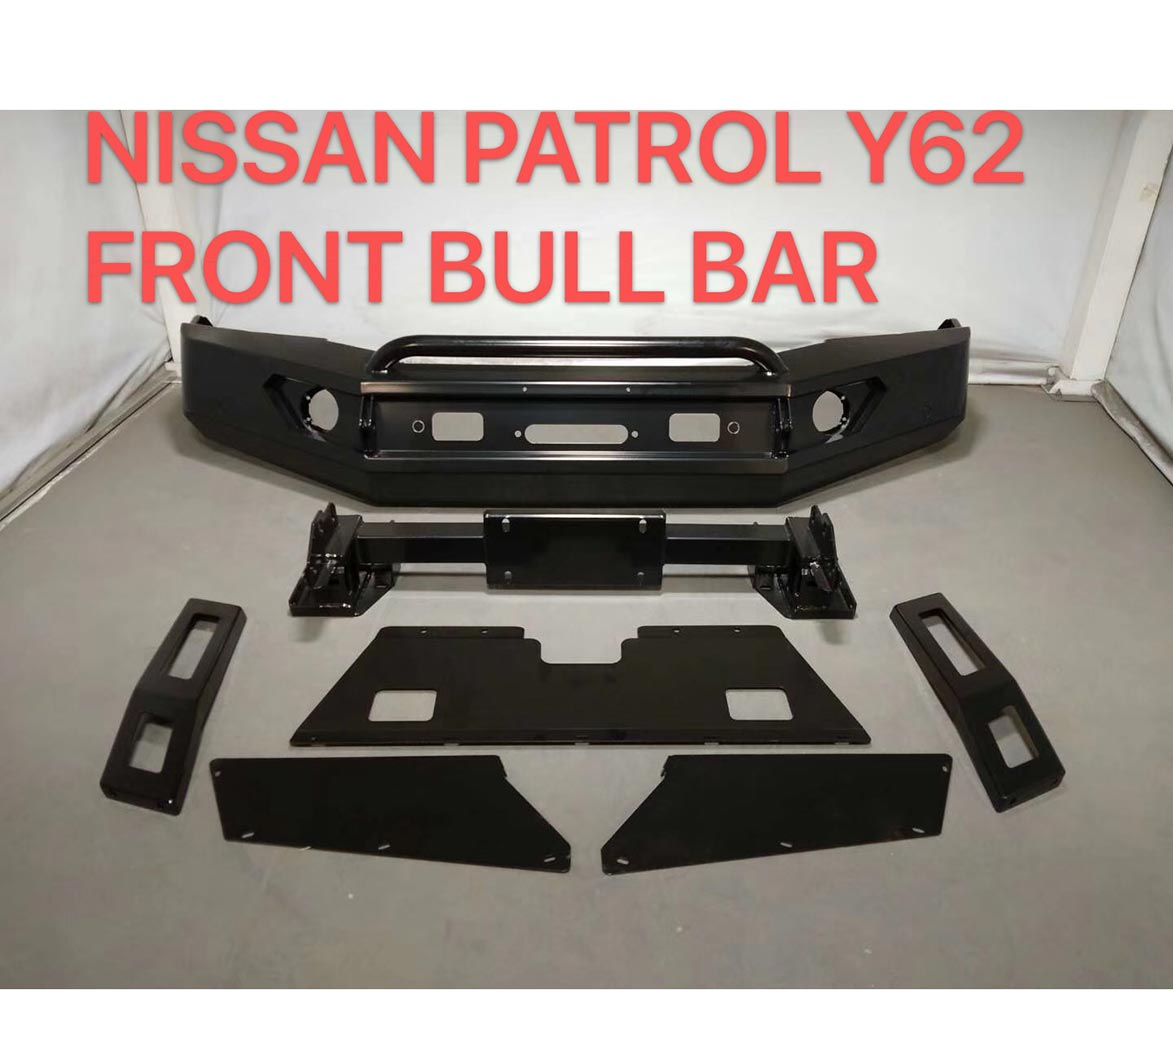 Bull Bar for Nissan Patrol Y62 Featured Image